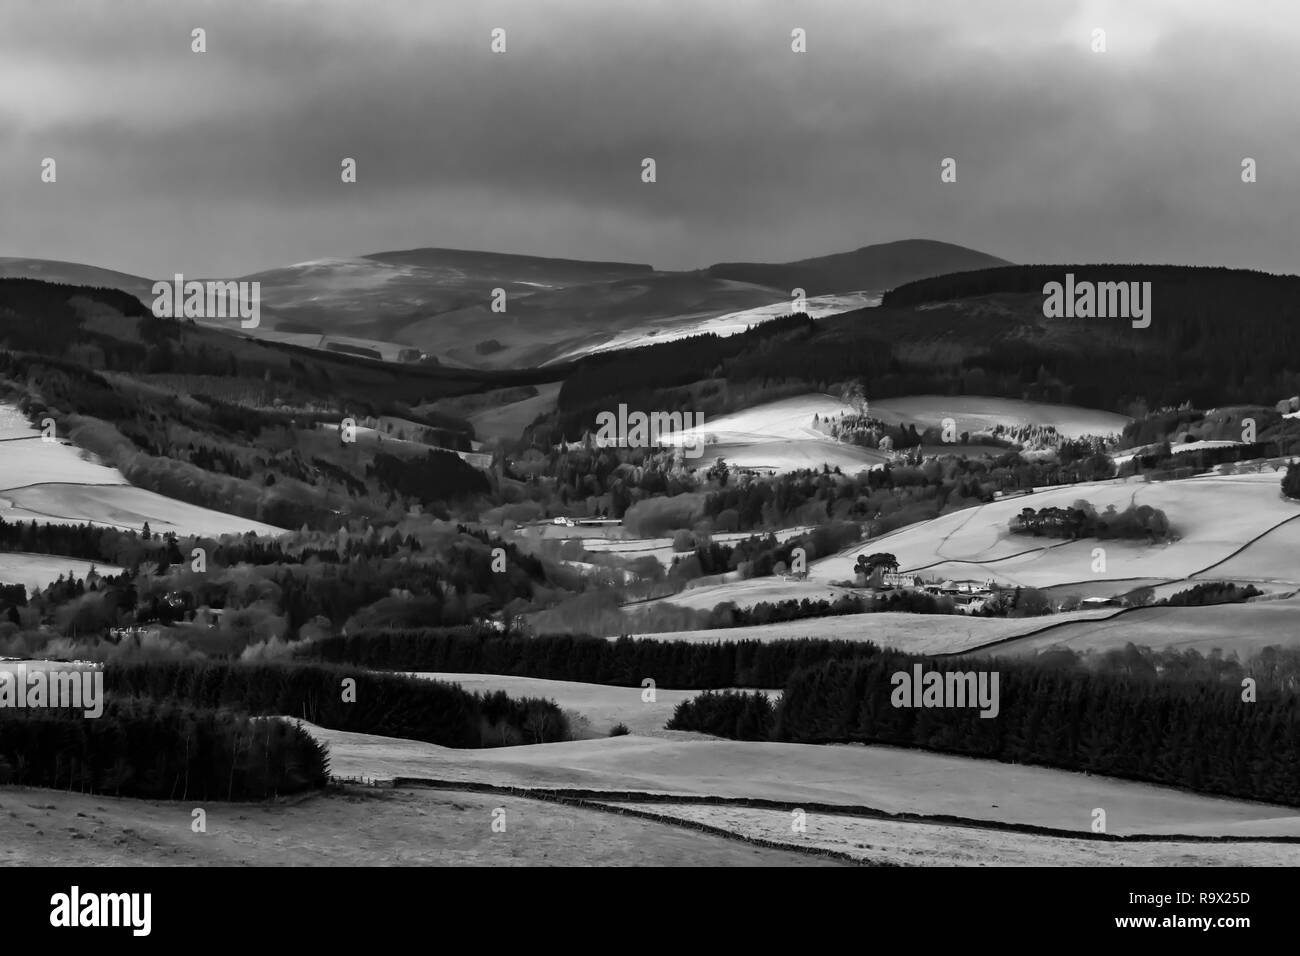 Selkirk, Scottish Borders, UK. 22nd December 2018. The Tweed valley at Yair near Selkirk in the Borders. Yair in Scot's means fish trap. Stock Photo